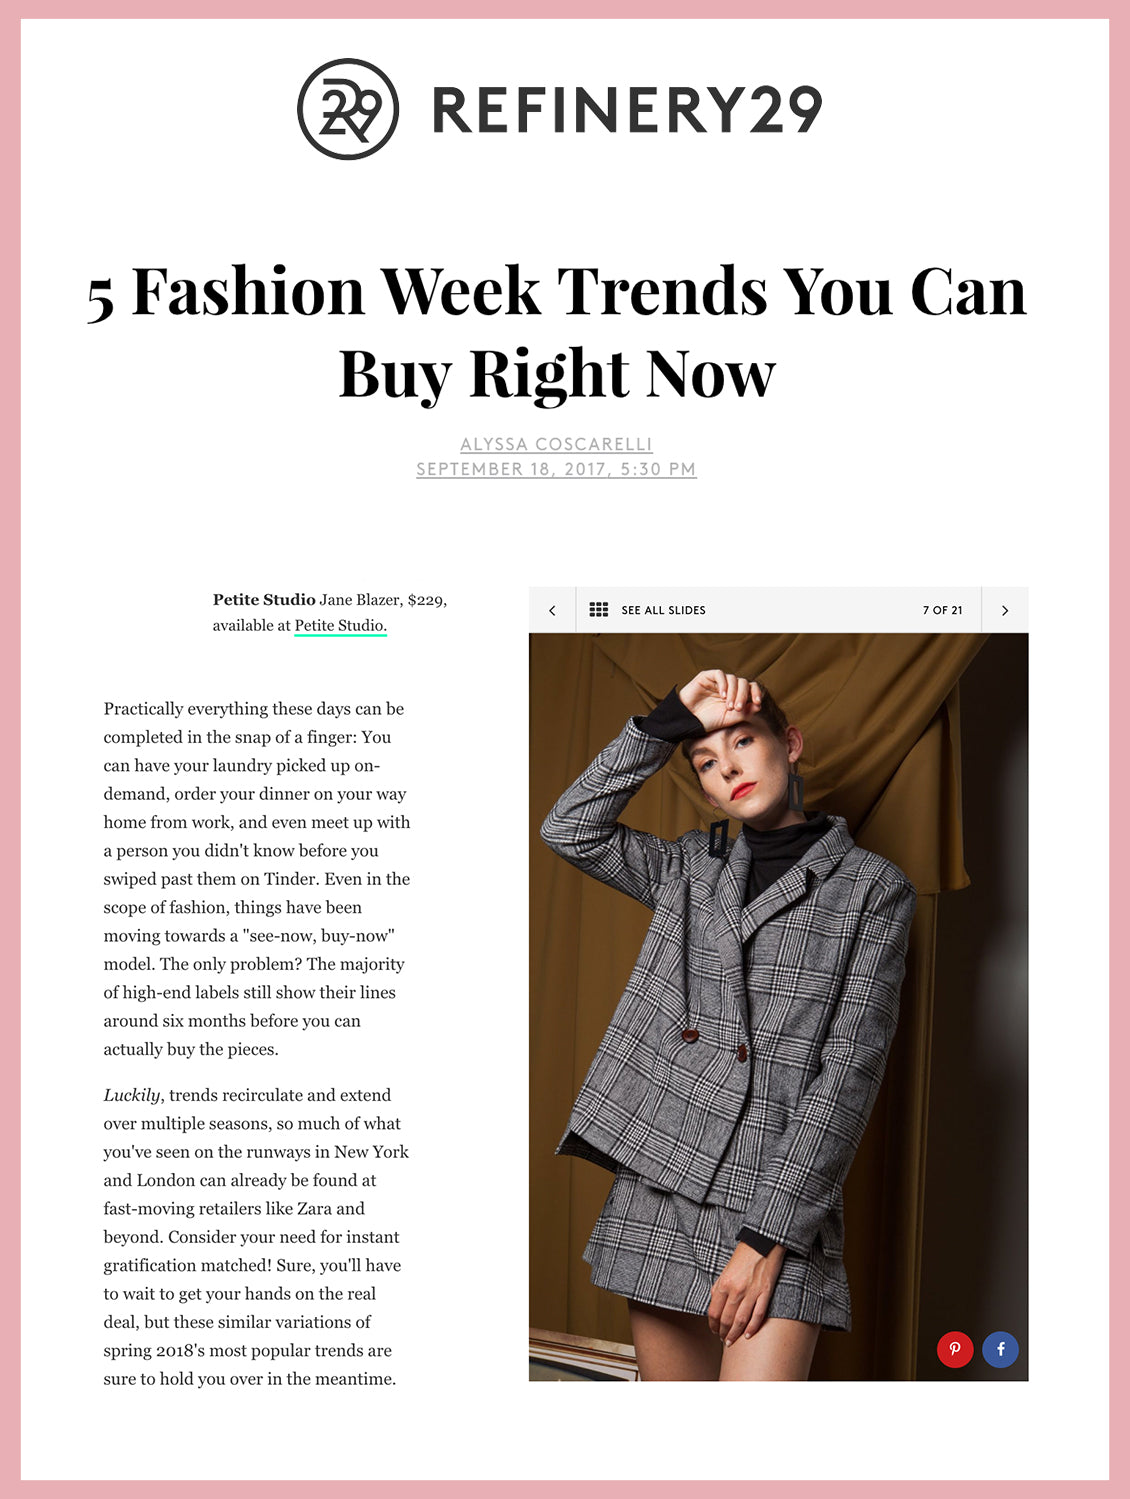 5 Fashion Week Trends You Can Buy Right Now